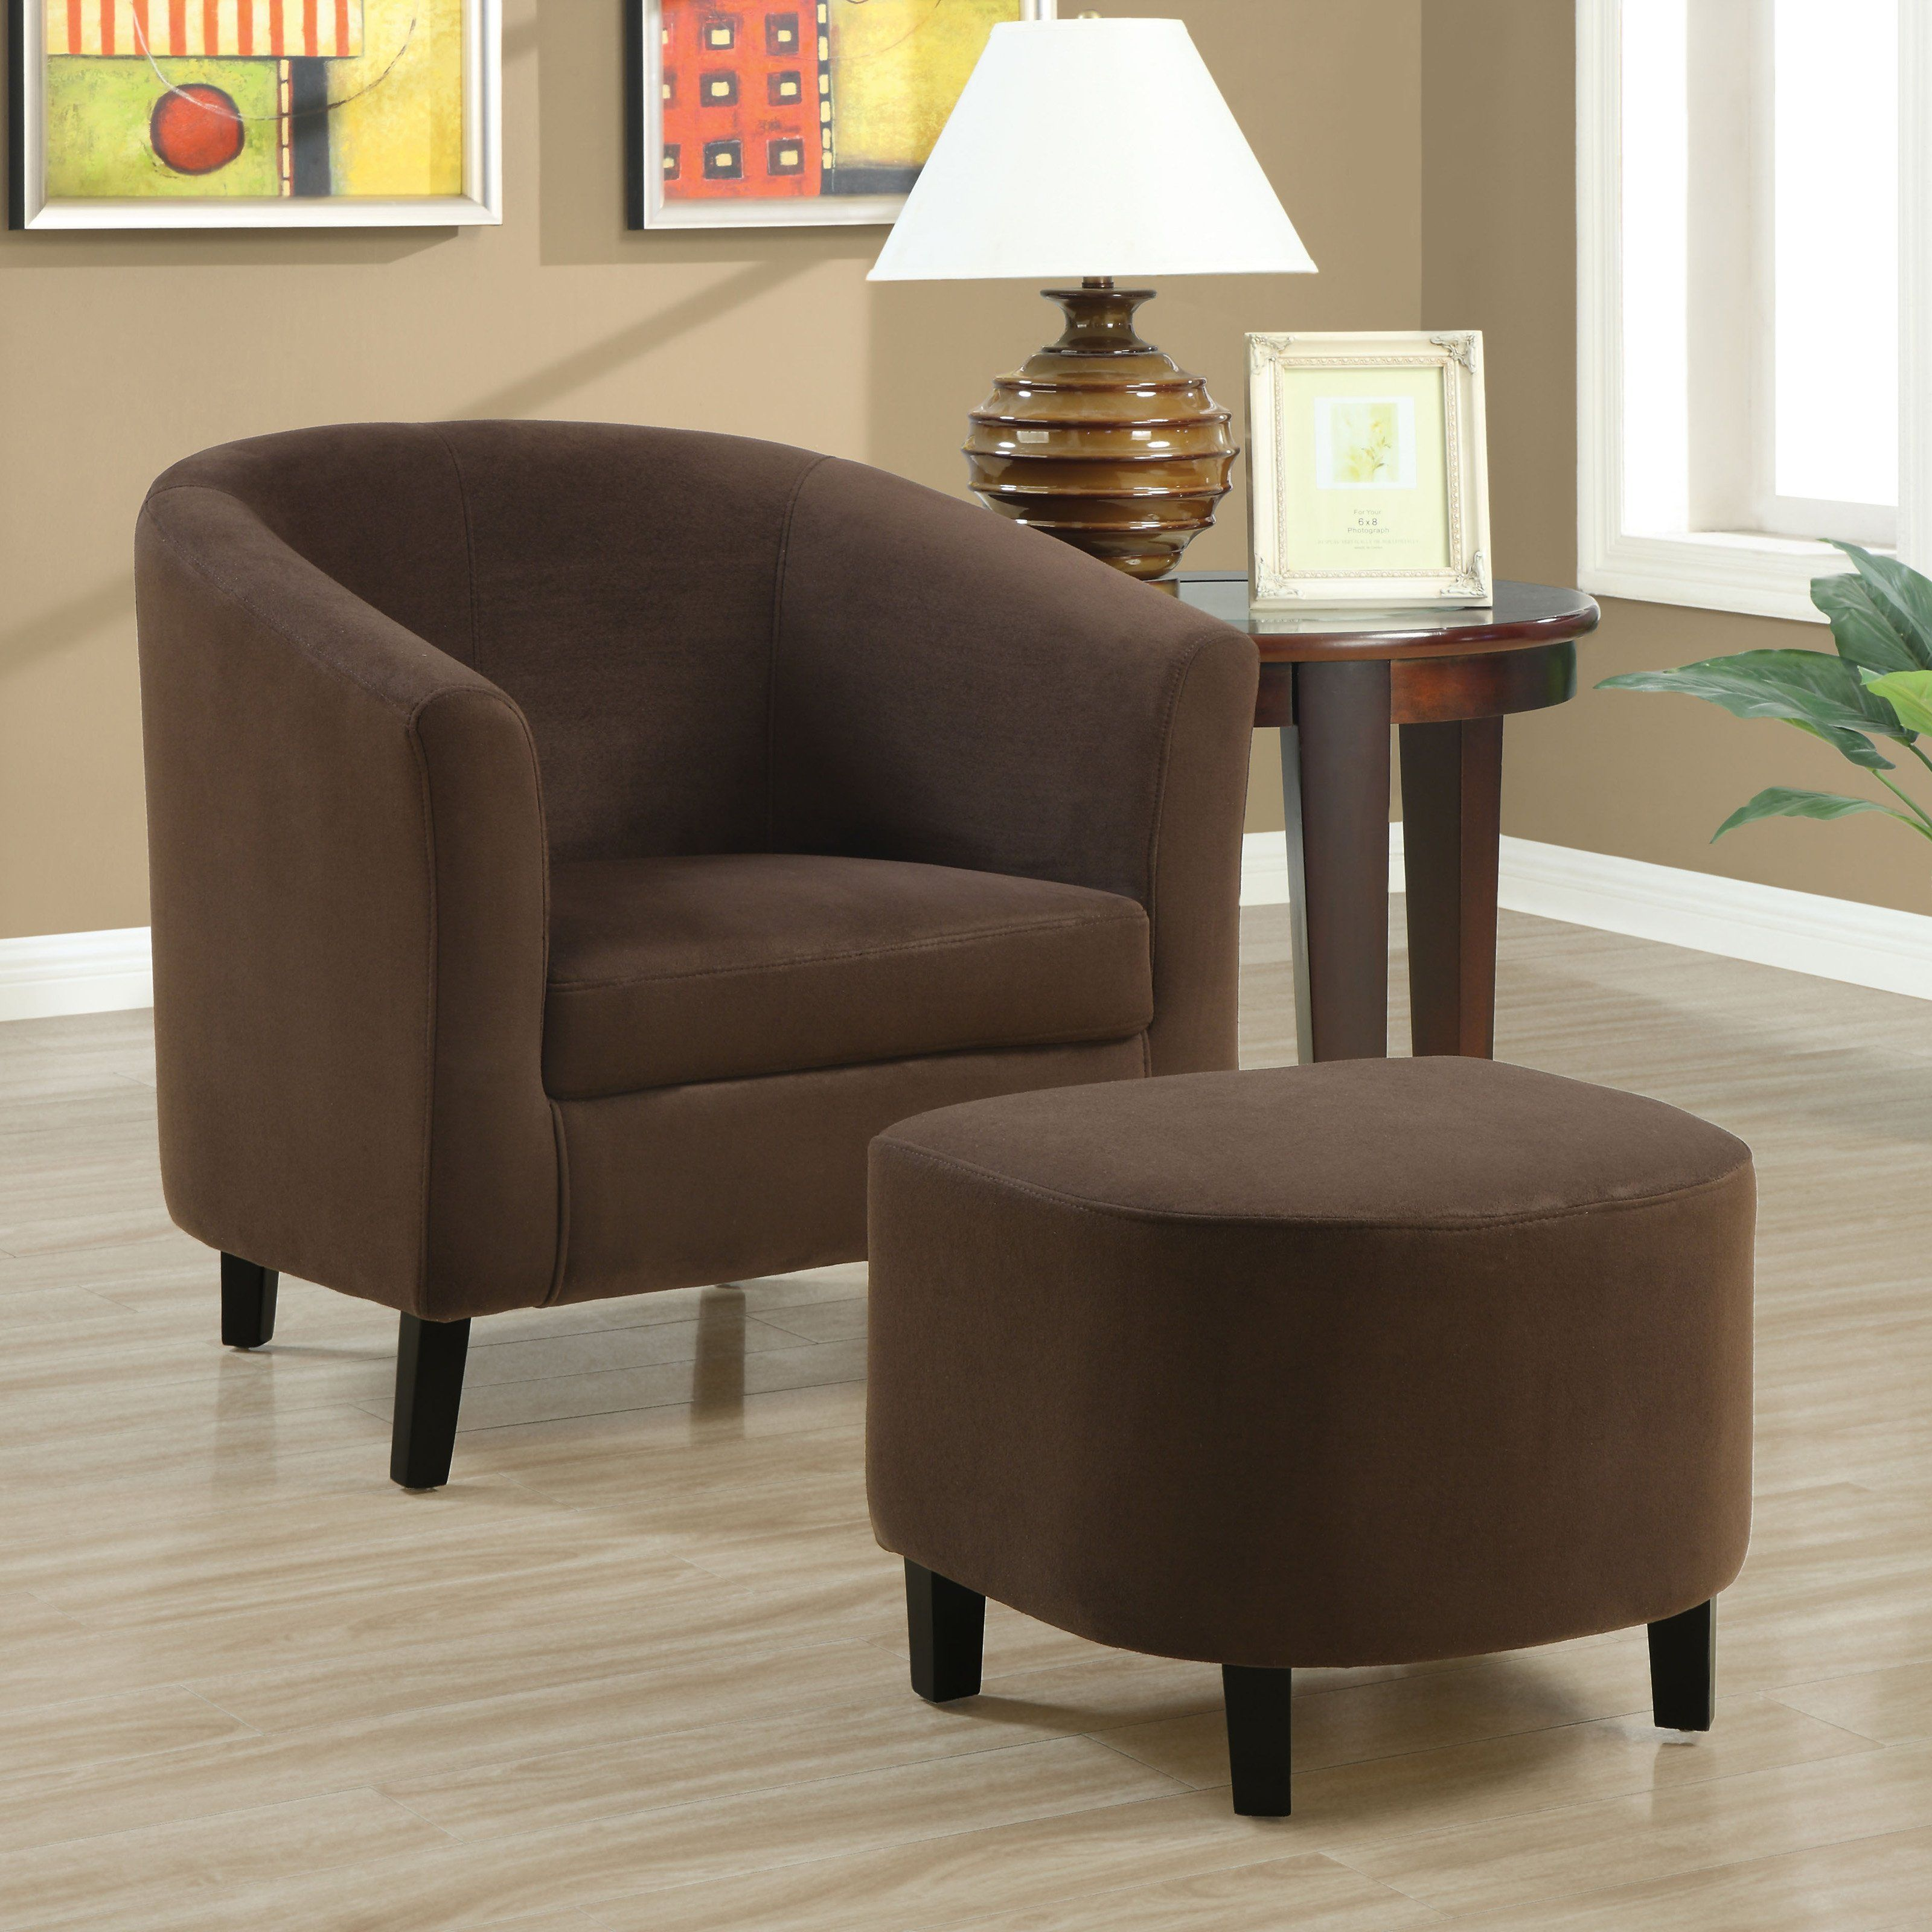 Chocolate Brown Accent Chairs.Have To Have It Asian Chocolate Brown Padded Micro Fiber Chair And